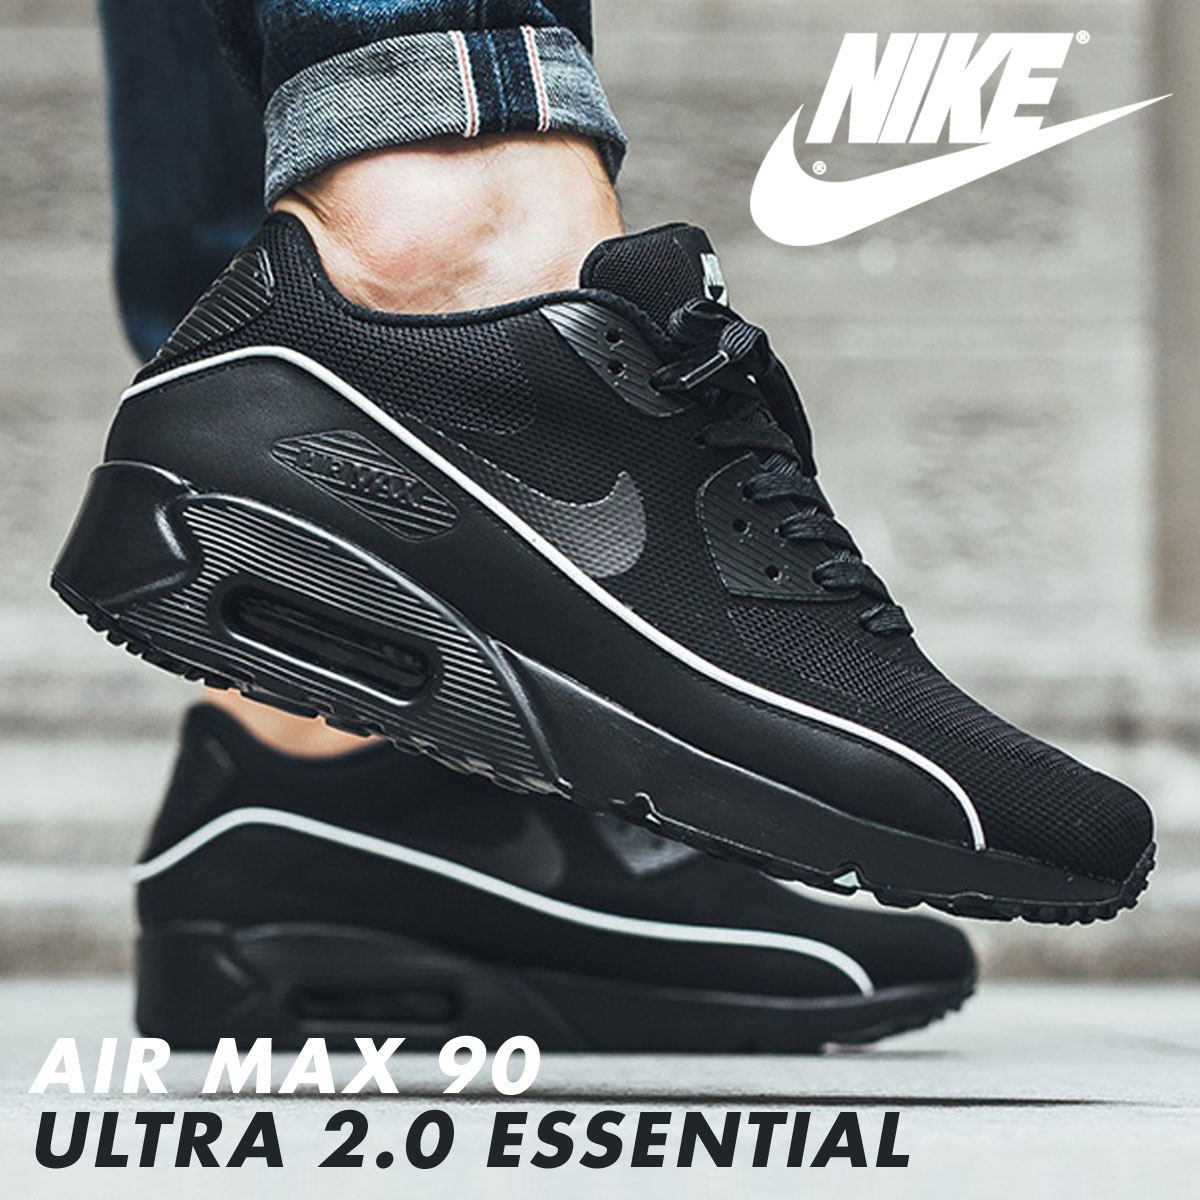 United States | Men's Shoes Nike Air Max 90 Ultra